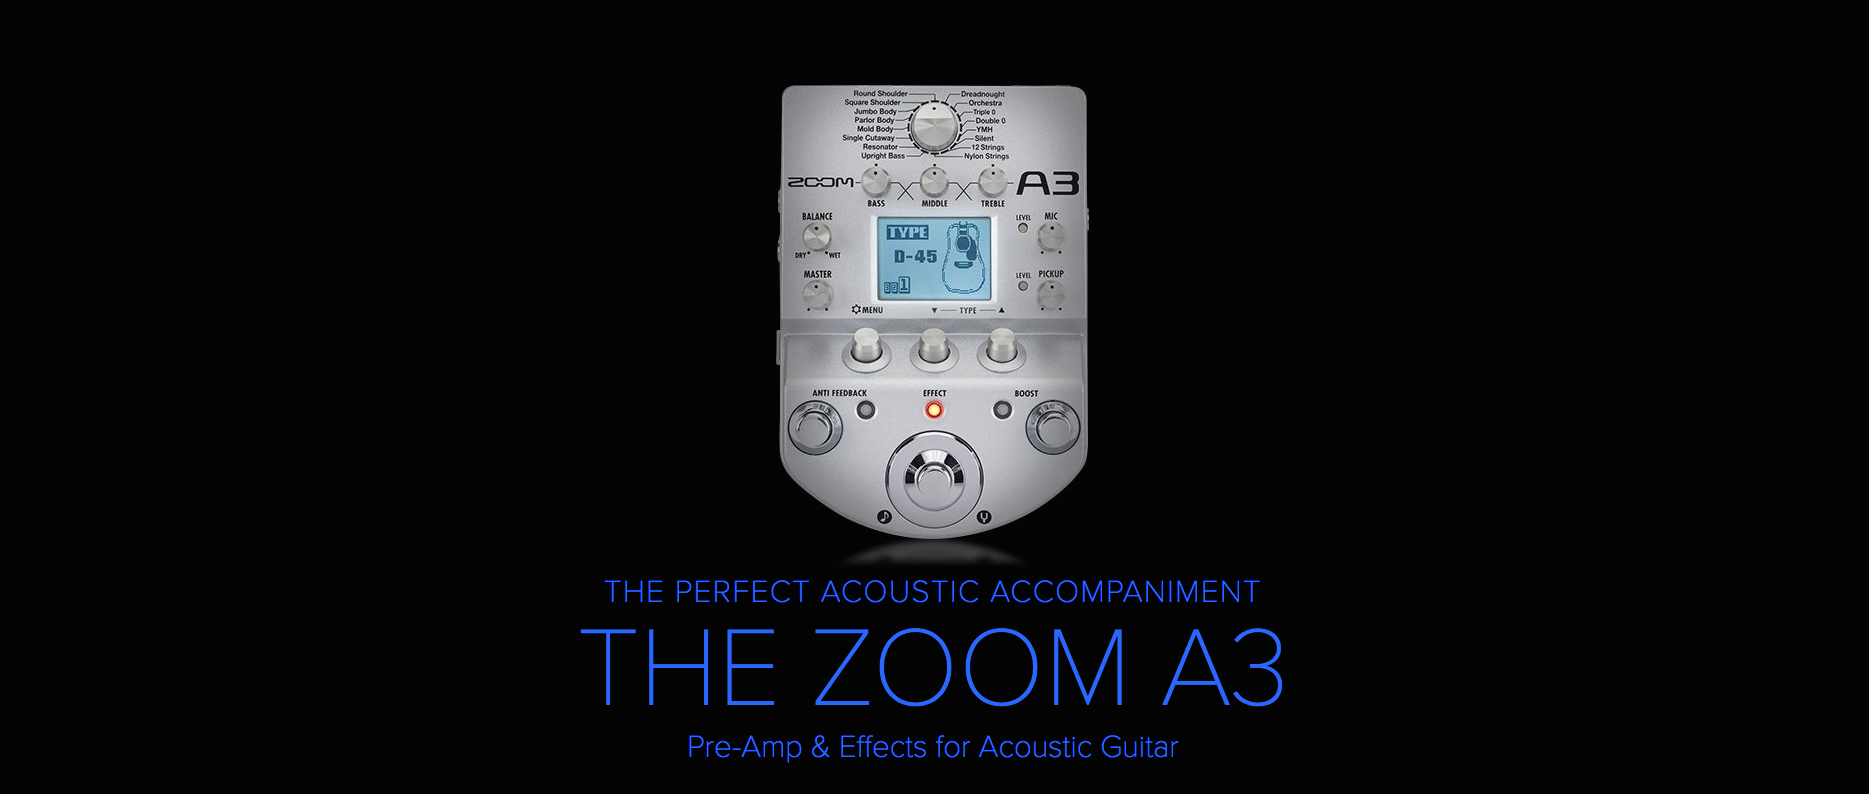 Zoom A3 Acoustic Pre-Amp & Effects